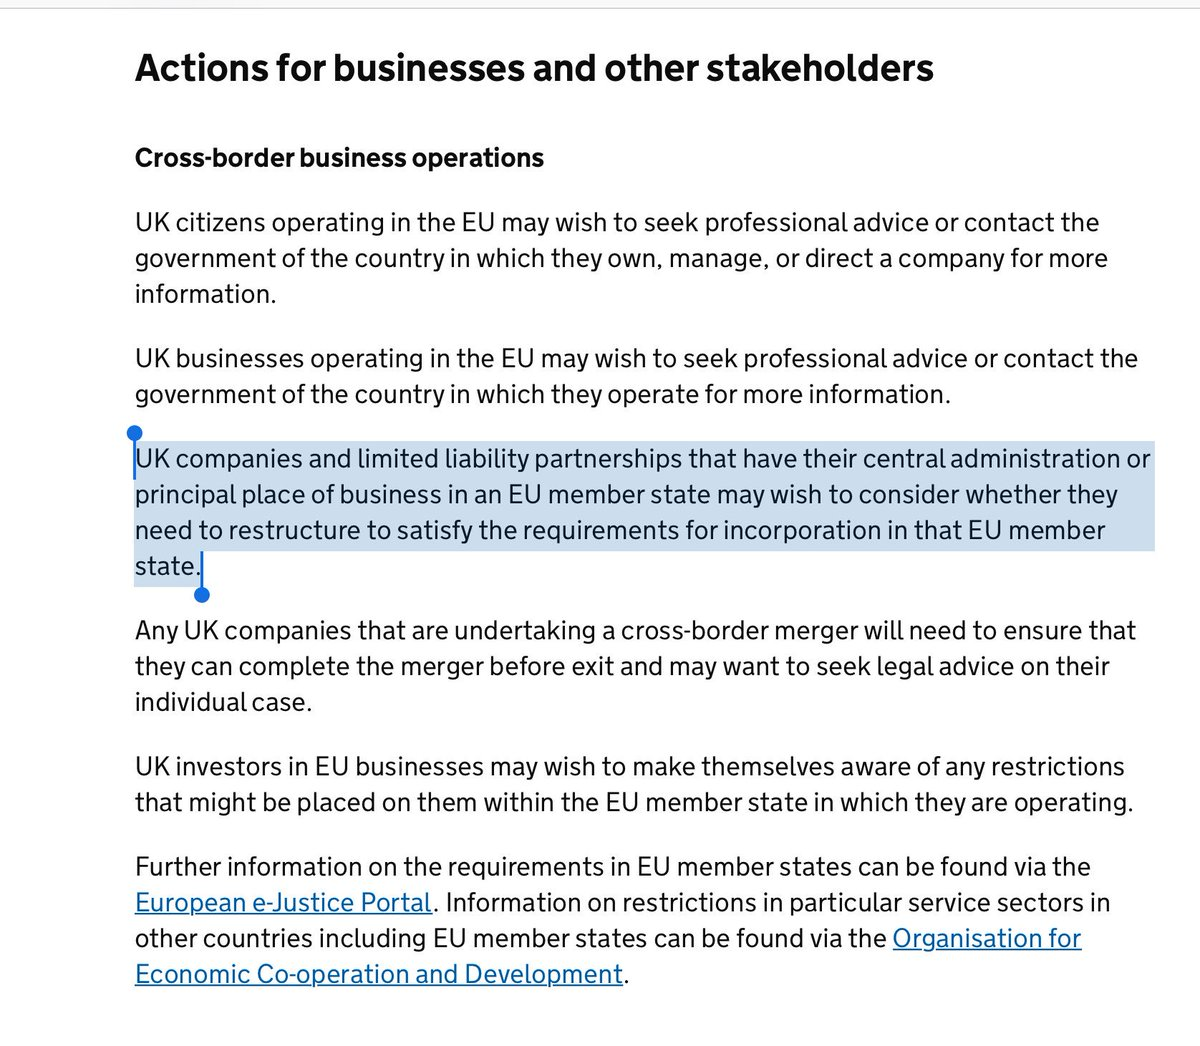 """No Deal notices...  UK Government advice suggests UK companies with large EU biz """"consider whether they need to restructure"""" - eg by moving domicile/inc - for No Deal Brexit.  First time in history a UK Govt effectively suggested shifting HQs out of UKhttps://t.co/p1WsX2BARV"""